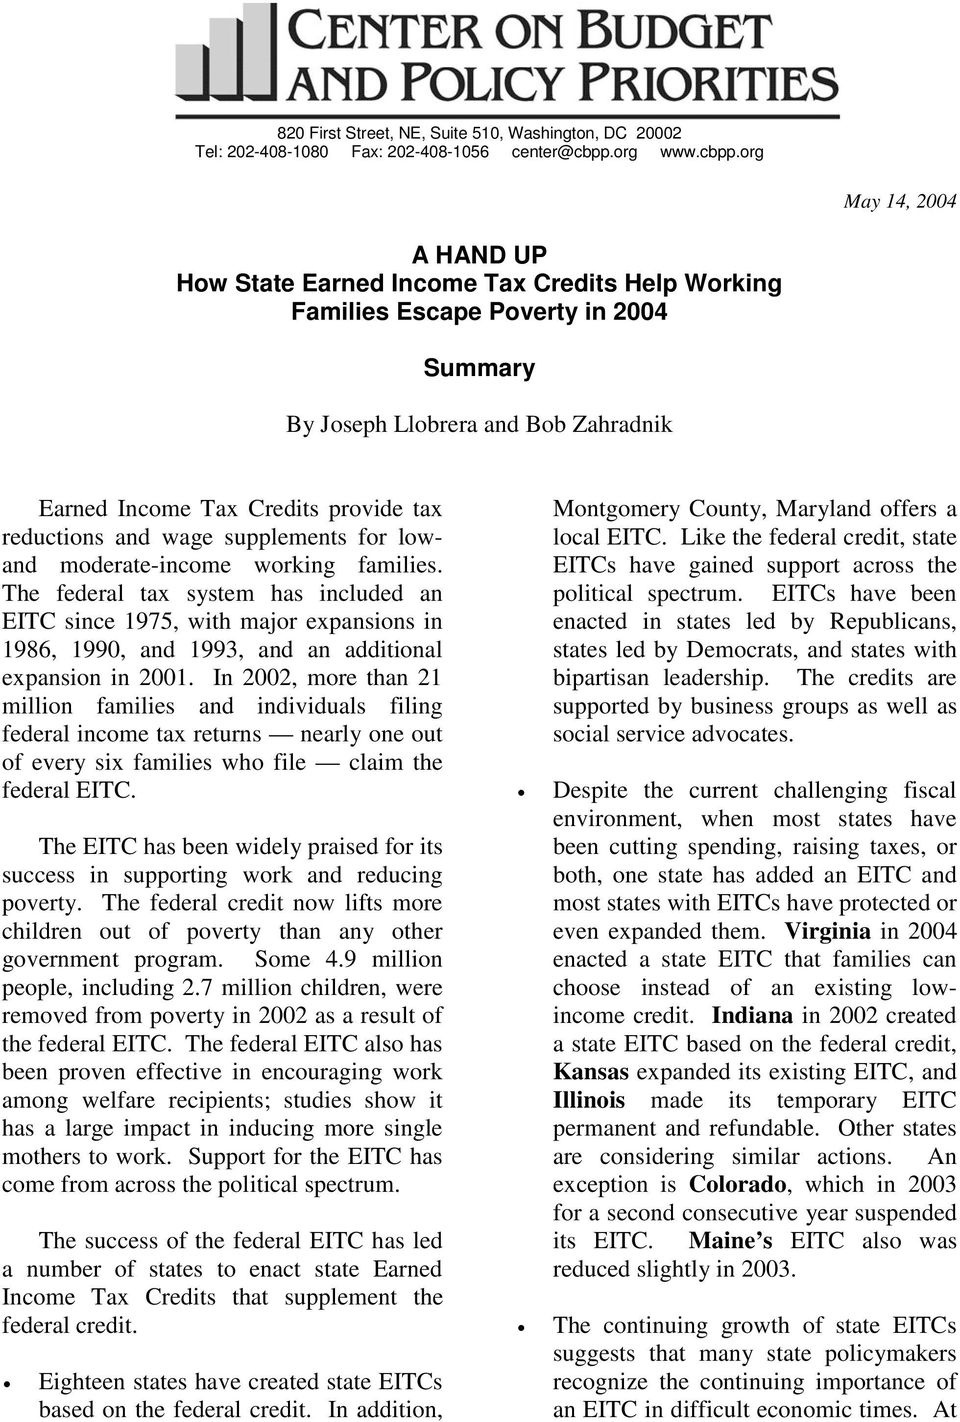 org May 14, 2004 A HAND UP How State Earned Income Tax Credits Help Working Families Escape Poverty in 2004 Summary By Joseph Llobrera and Bob Zahradnik Earned Income Tax Credits provide tax